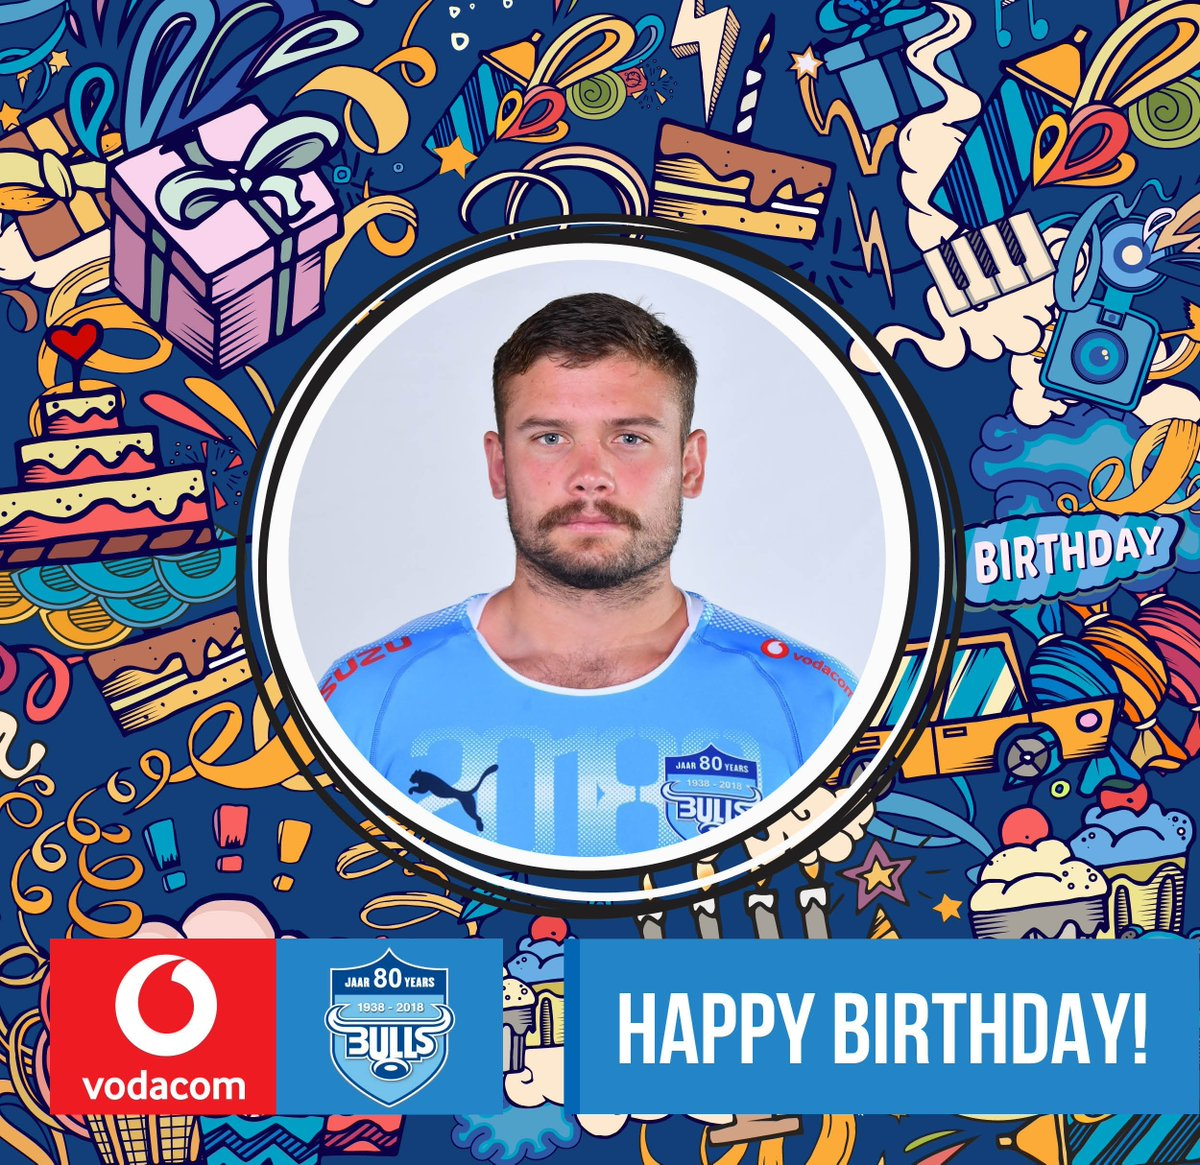 official blue bulls on twitter the vodacom bulls would like to wish jaco visagie and lance lemmetjies a very happy birthday enjoy your special day